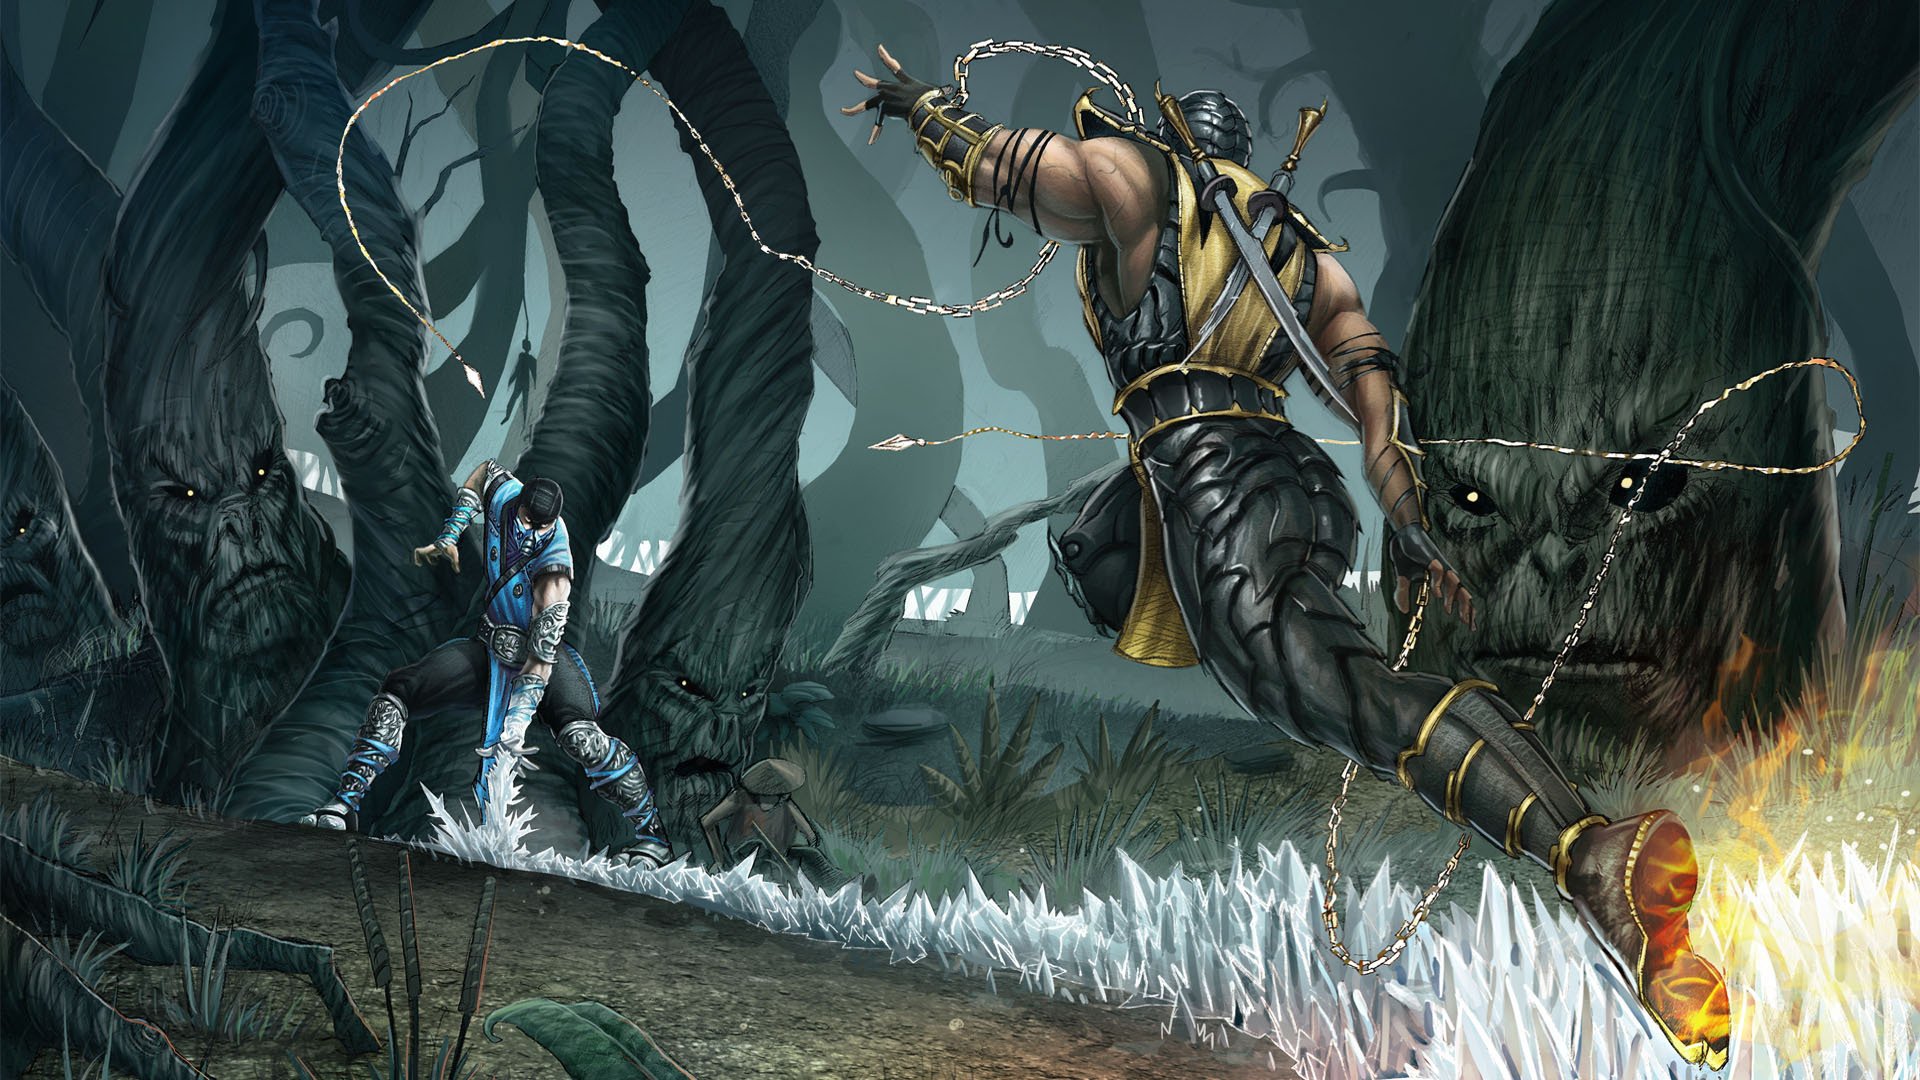 Mortal Kombat Images Mortal Kombat Hd Wallpaper And Background